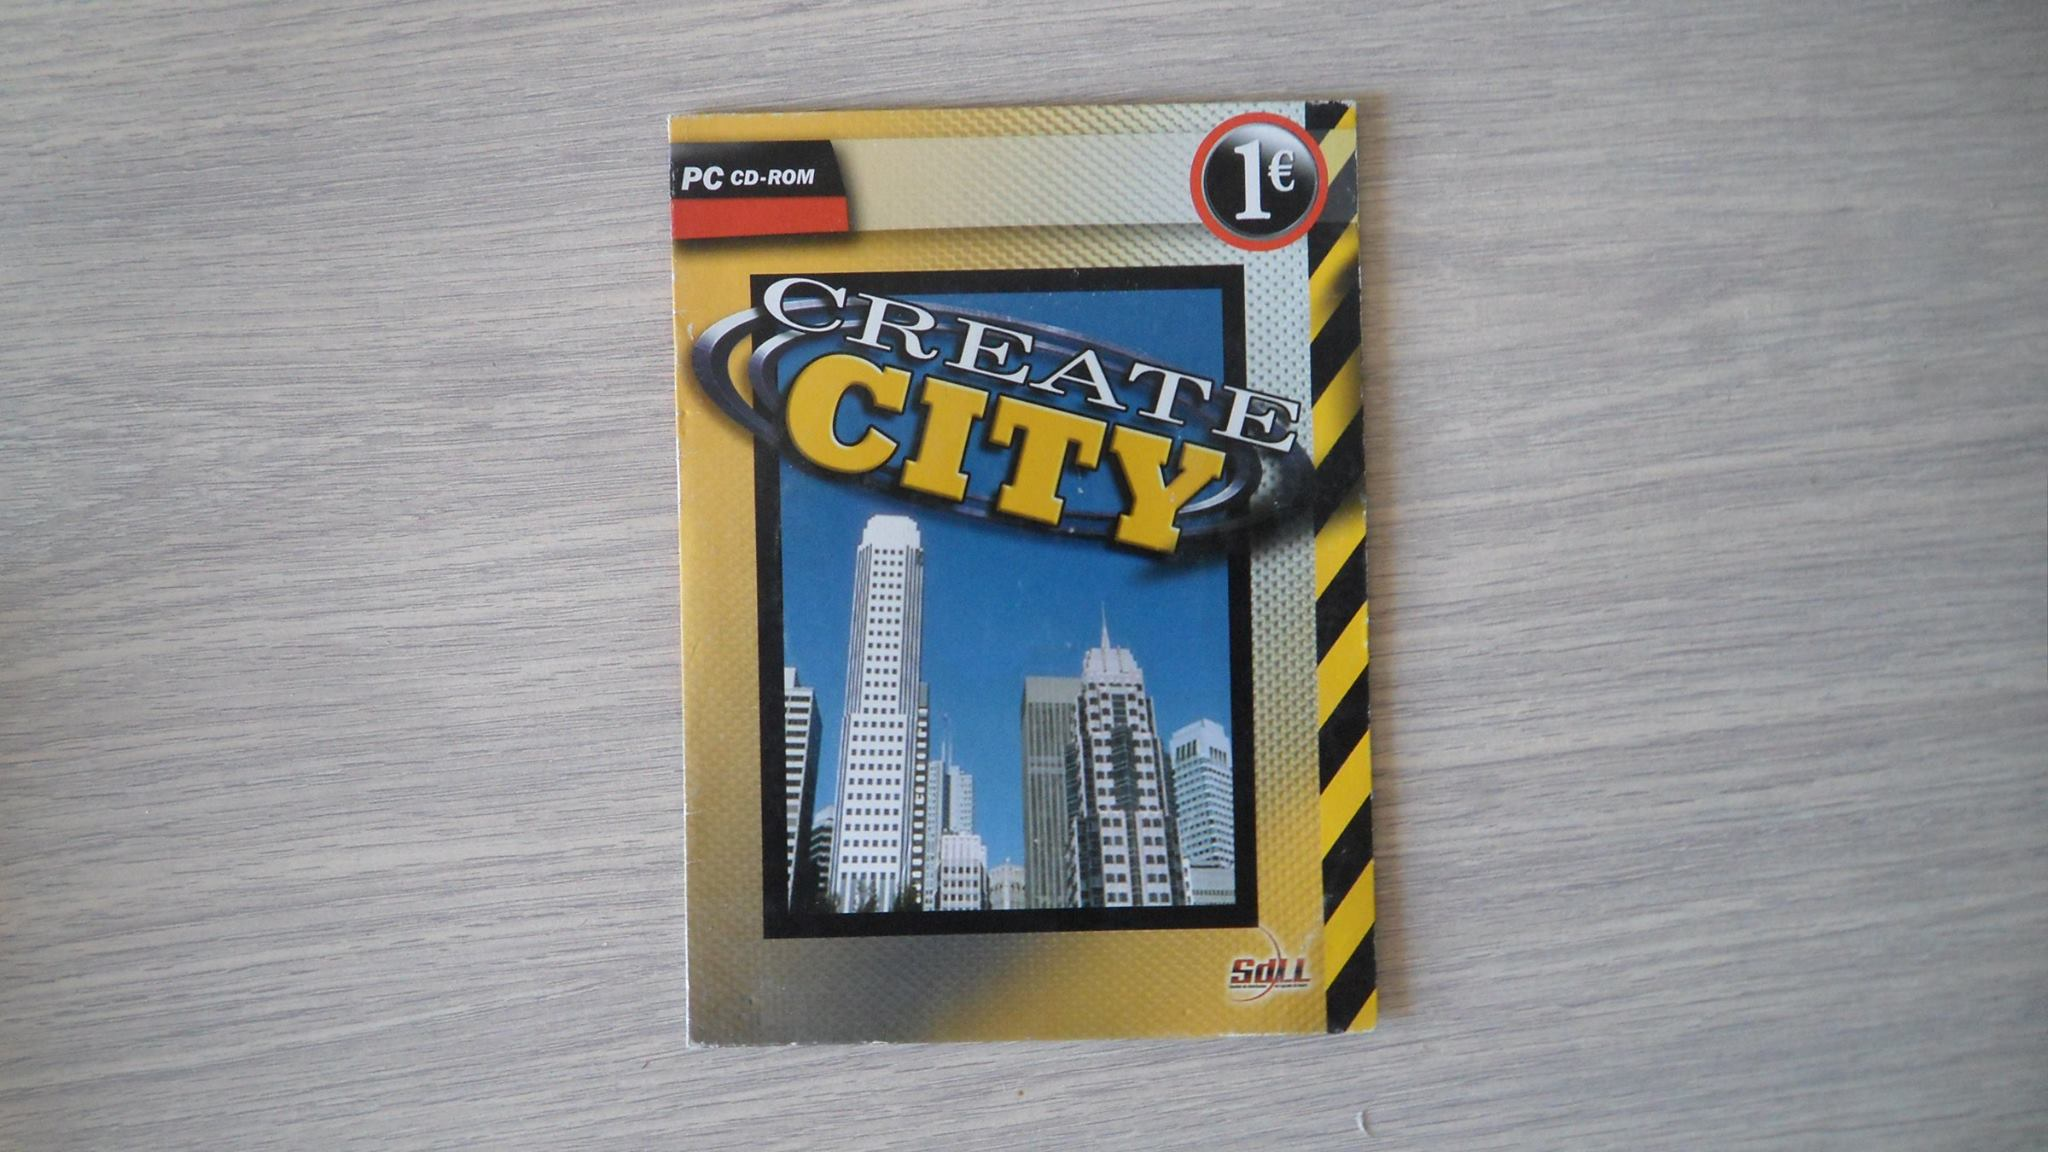 jeux pc create city 0427